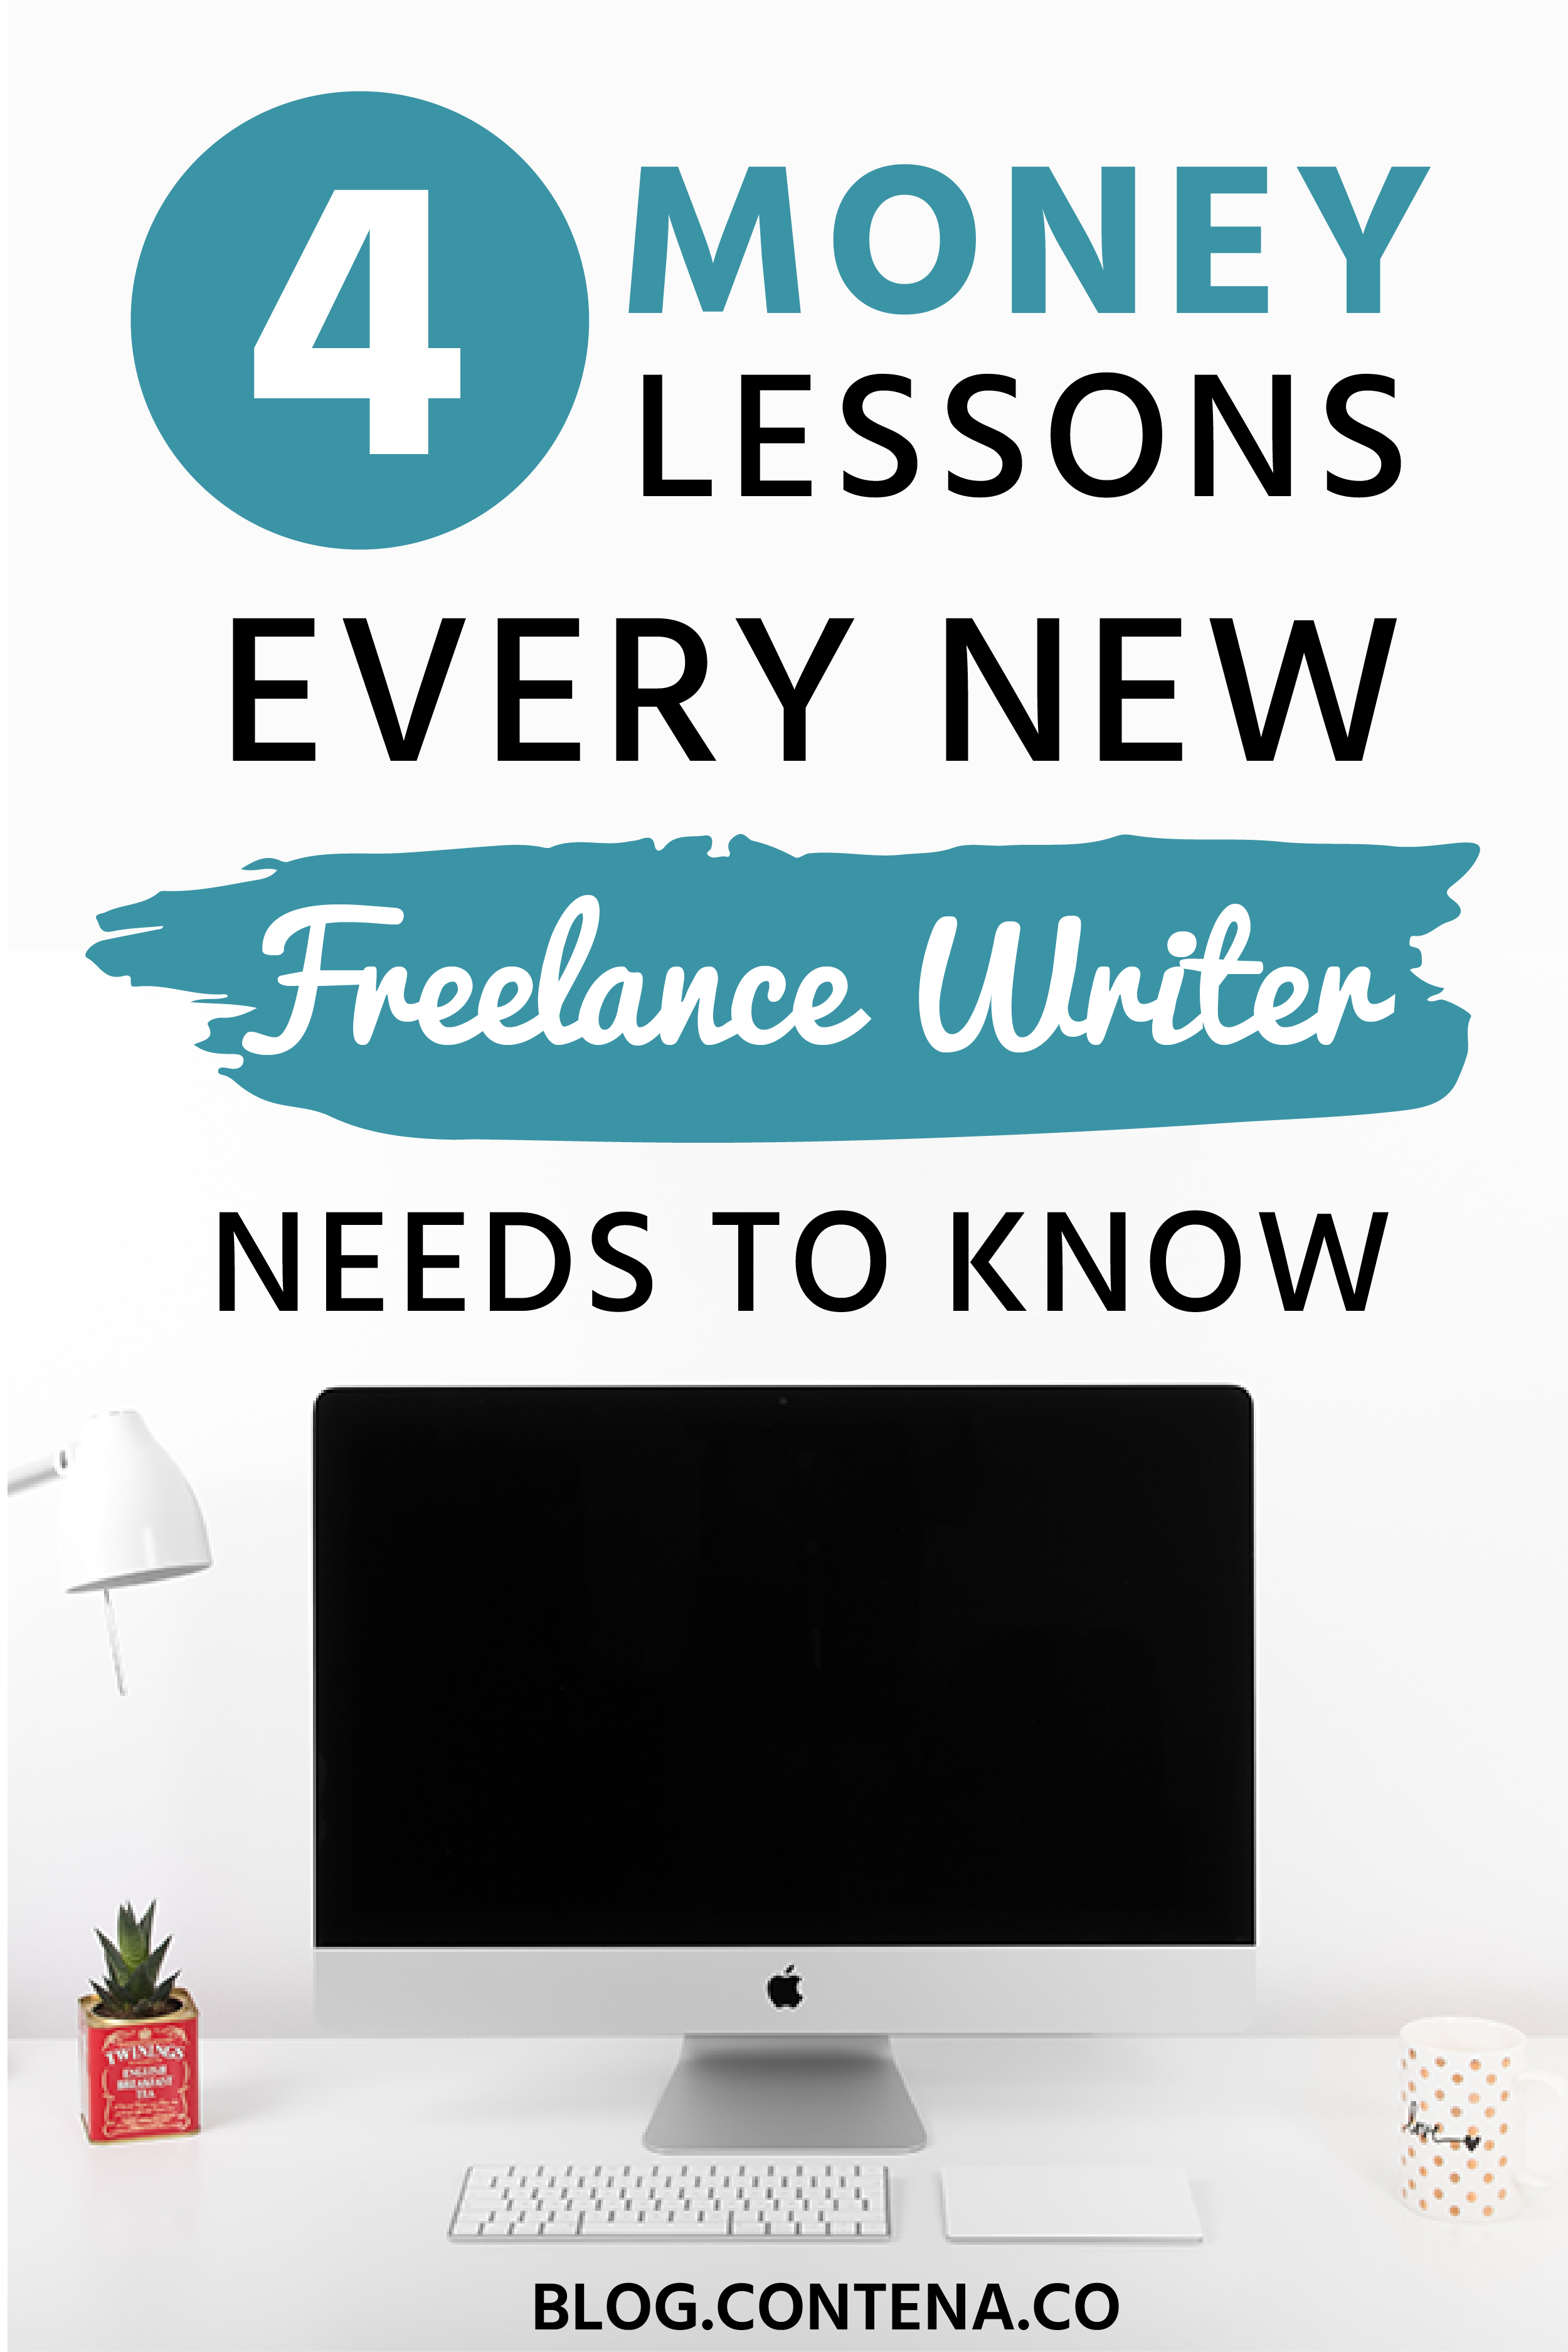 If you're a beginner freelance writer, here are 4 money lessons you need to know. We're talking about paid freelance writing gigs, content mills, how to work smart as a freelancer, charging fees and pricing, and the remote worker lifestyle. #FreelanceWriting #Freelancer #WorkFromHome #SideHustle #Money #OnlineBusiness #Writing #WritingJobs #Money